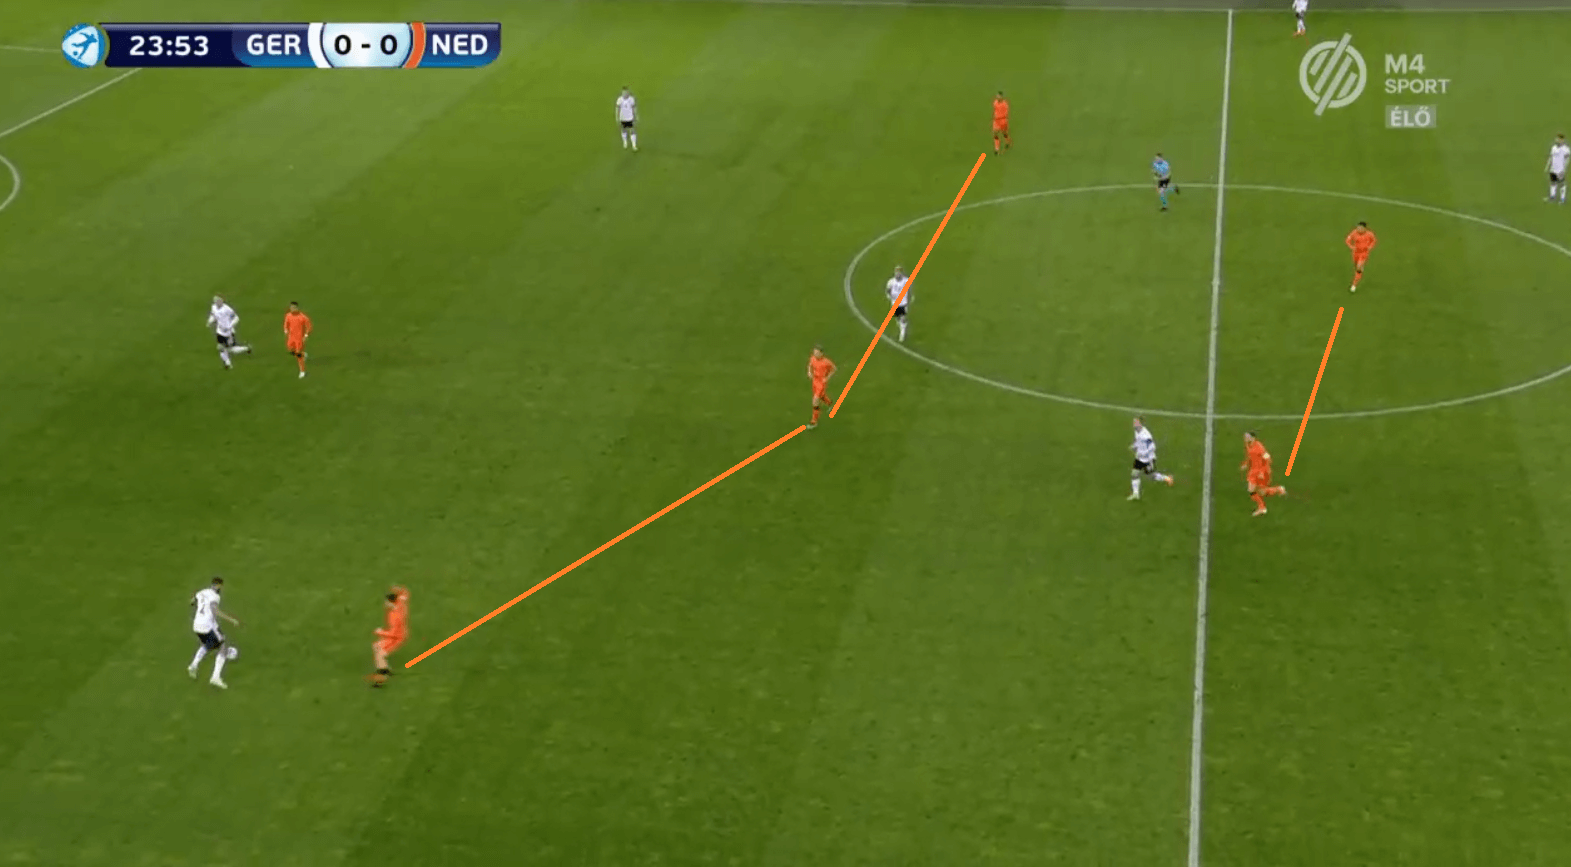 Protecting the Zones: How Netherlands' zonal system and Germany's disciplined backline cancelled out each other - tactical analysis tactics